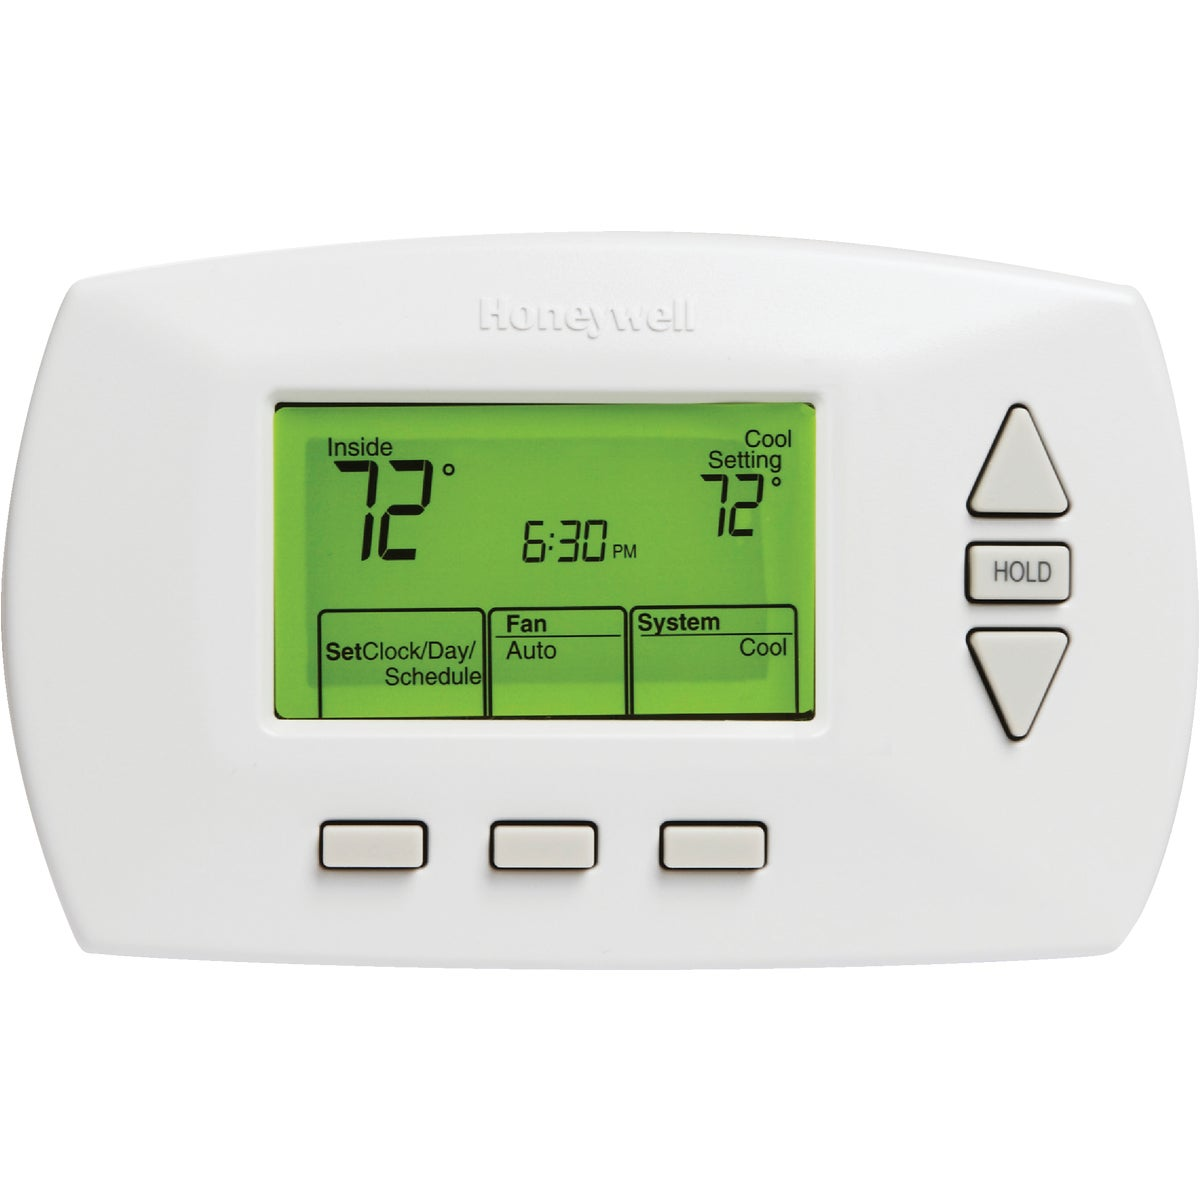 5-1-1 PROGRAM THERMOSTAT